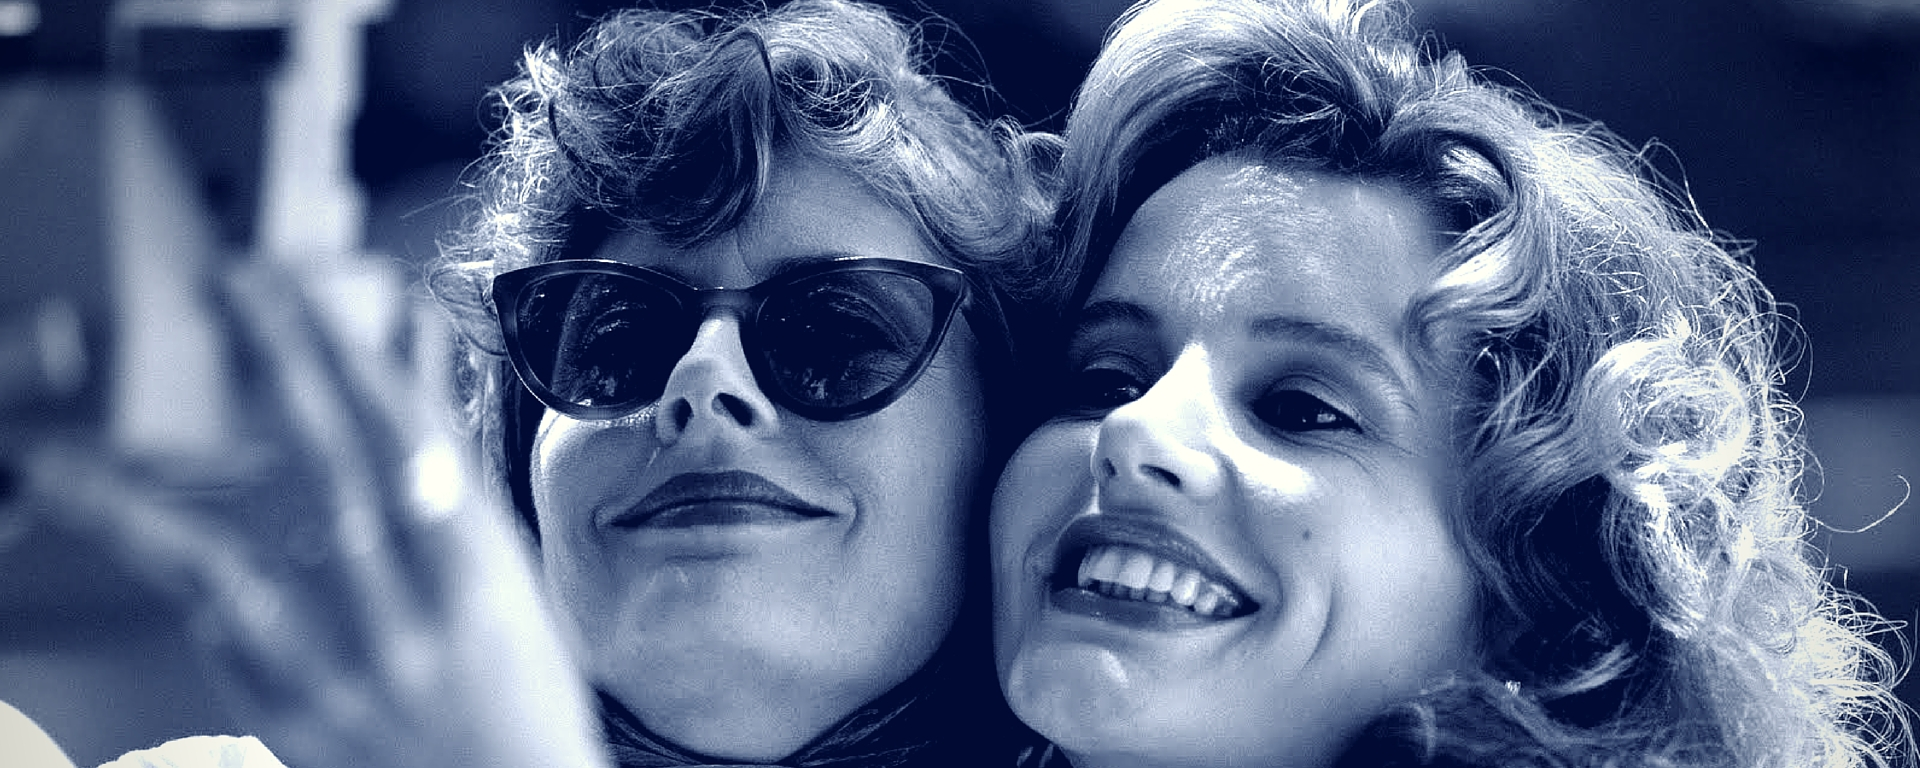 Thelma & Louise in blu